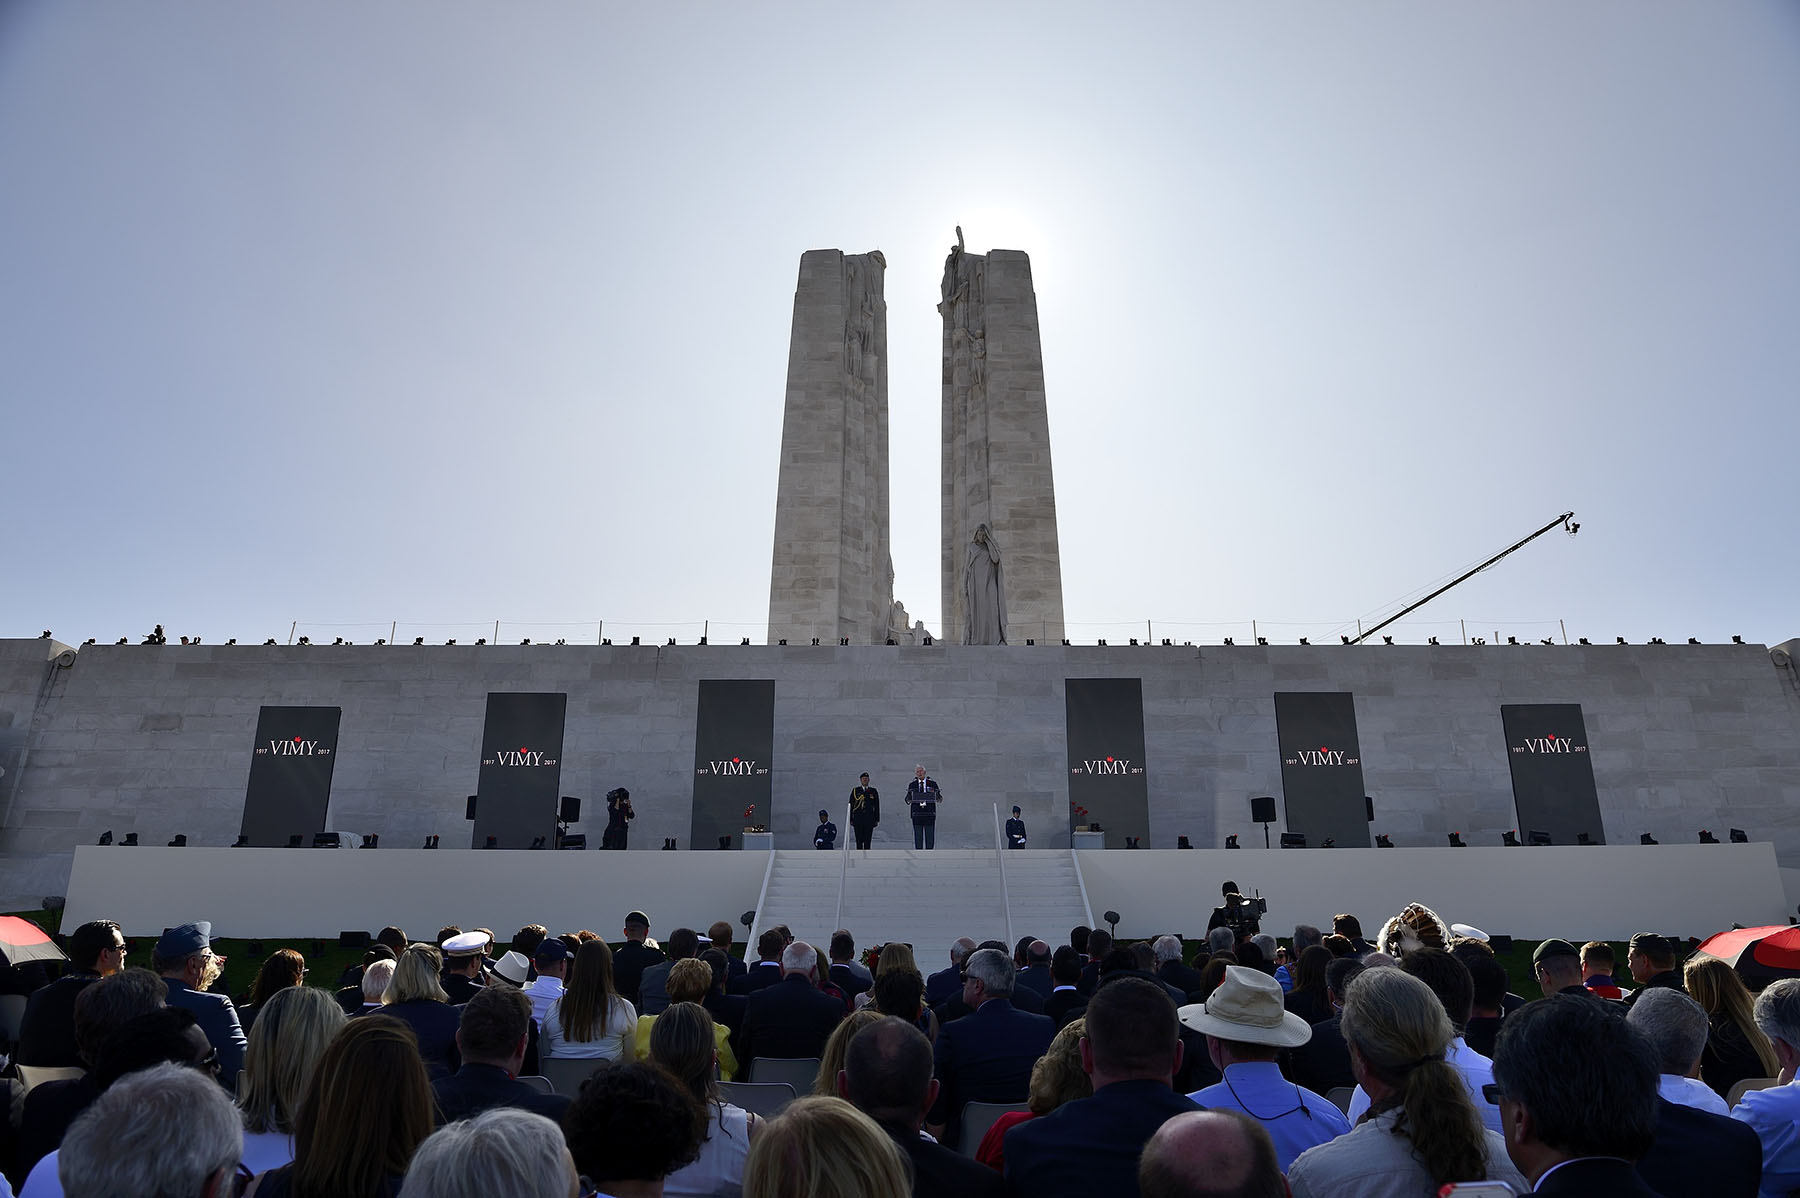 Their Excellencies attended the ceremony commemorating the 100th anniversary of the Battle of Vimy Ridge at the Canadian National Vimy Memorial.